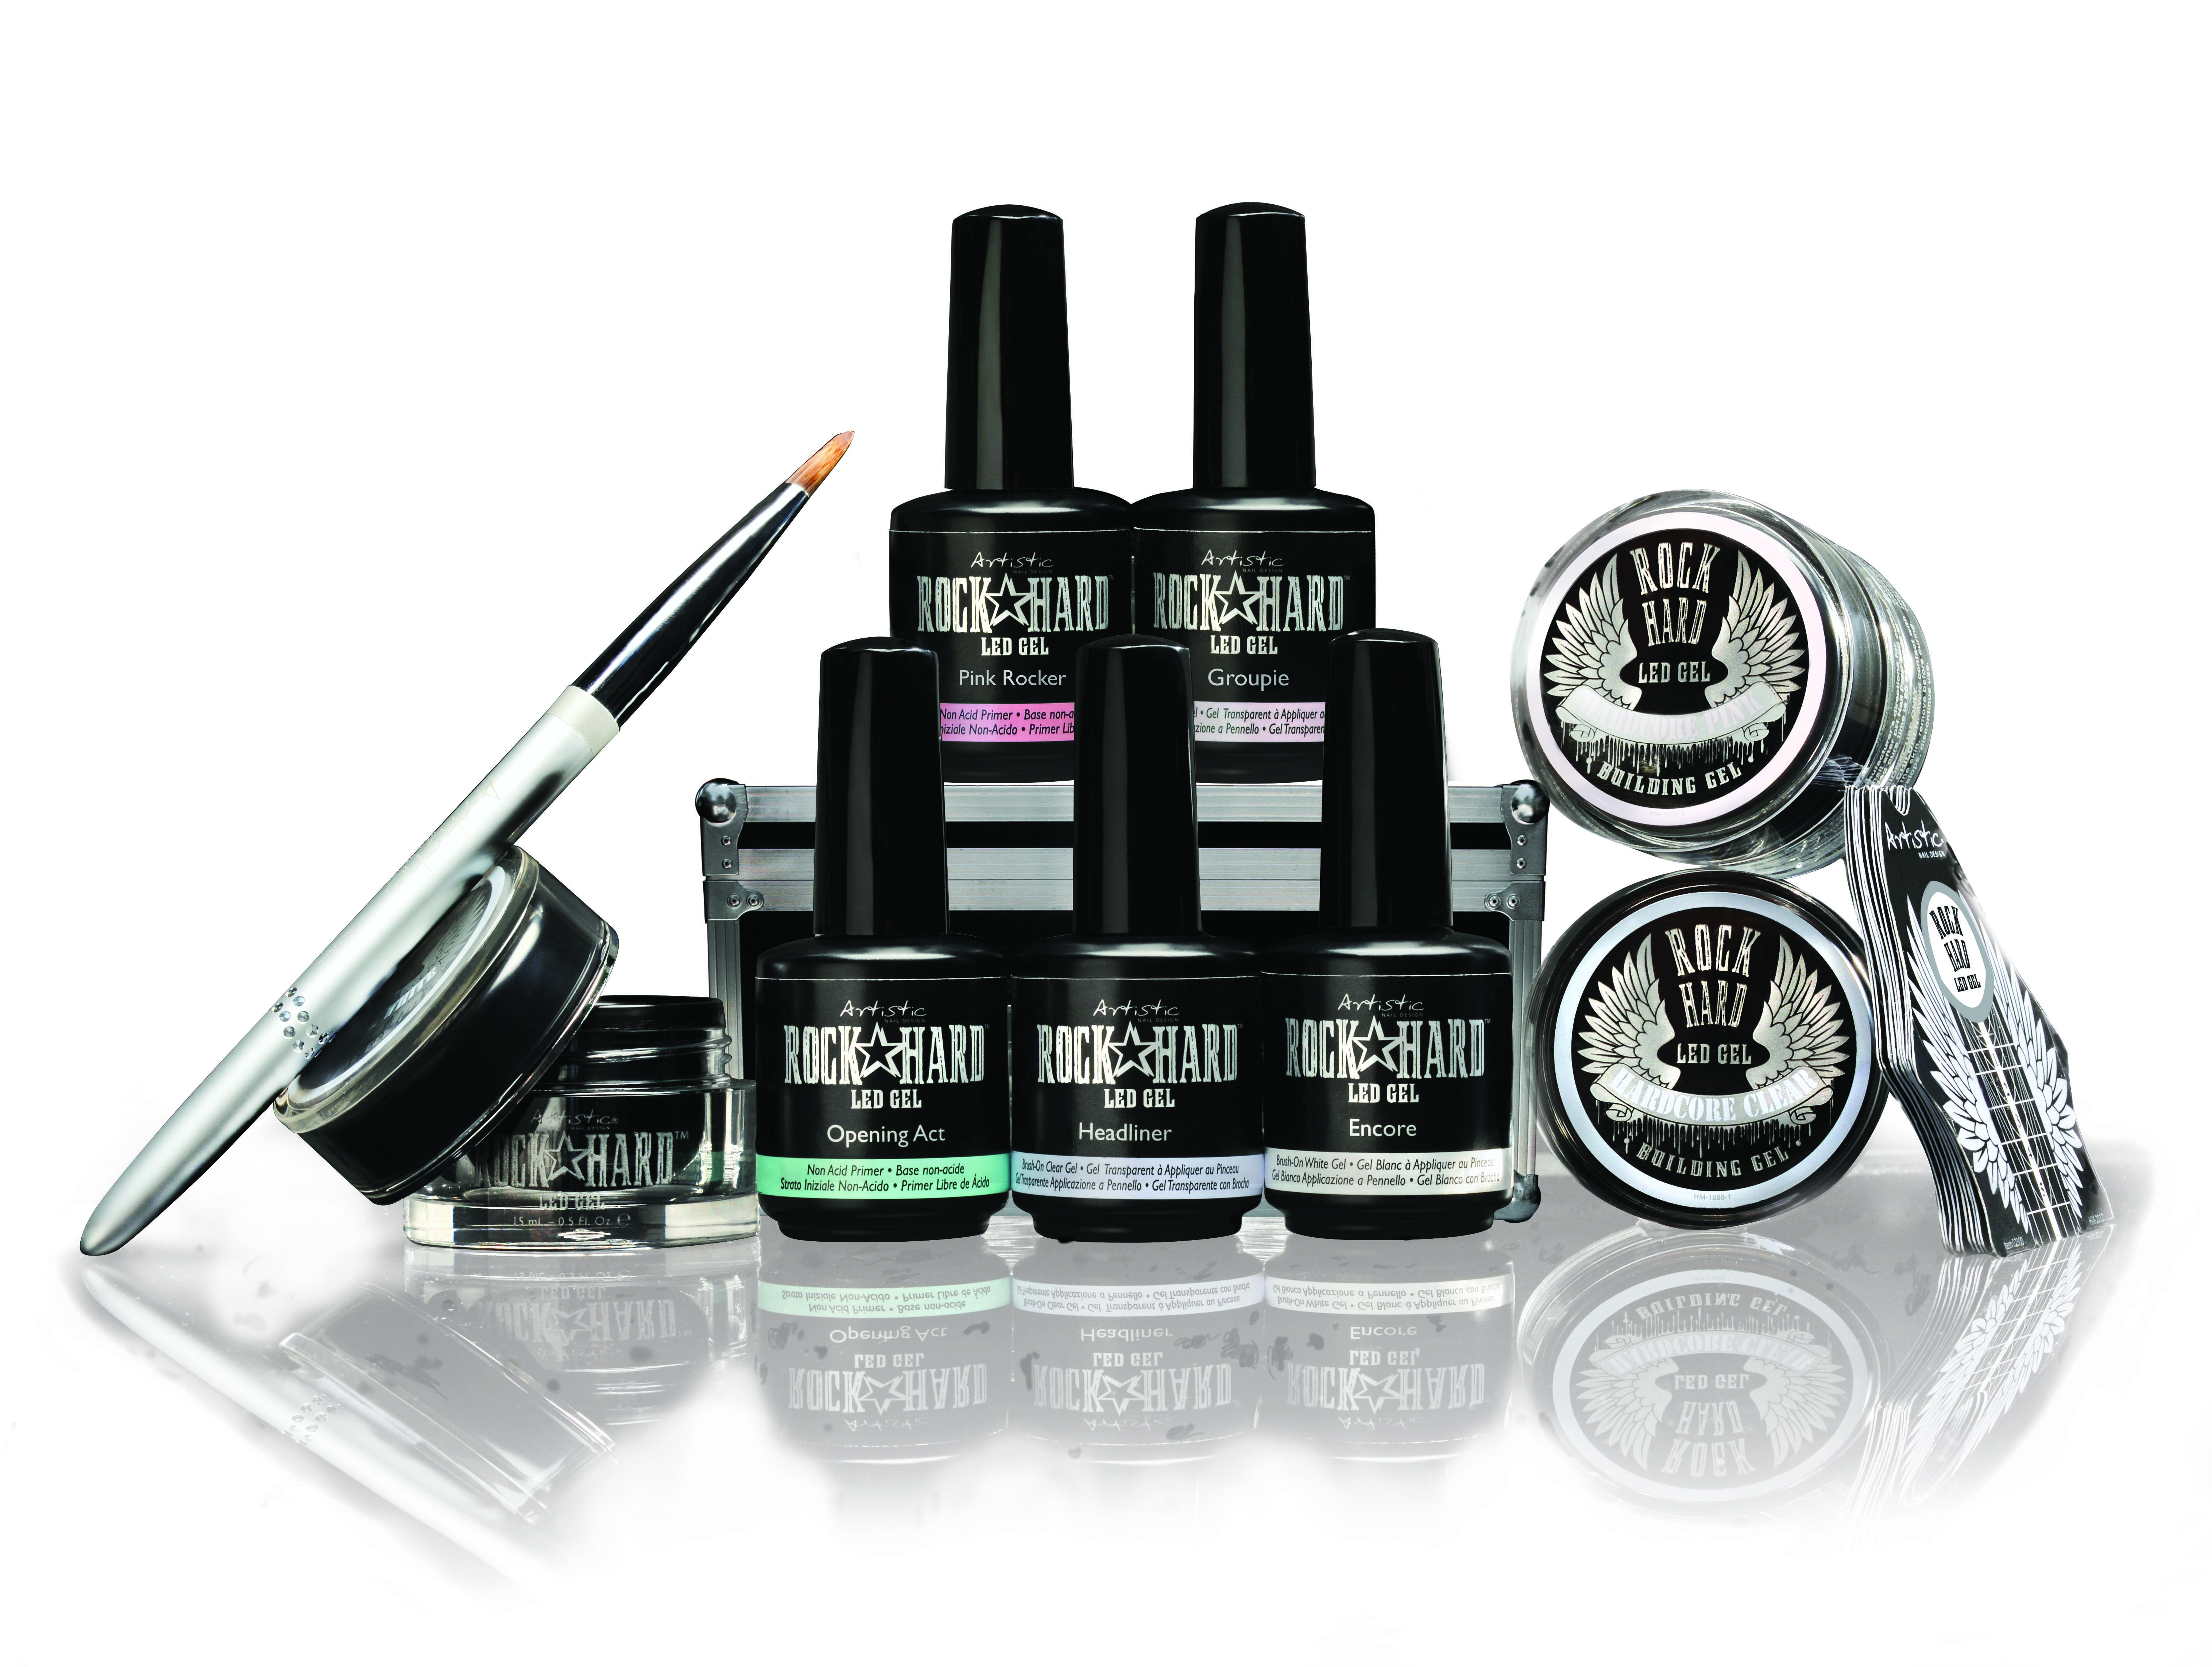 Coming Soon To The Urban Spa Artistic Rock Hard Nails